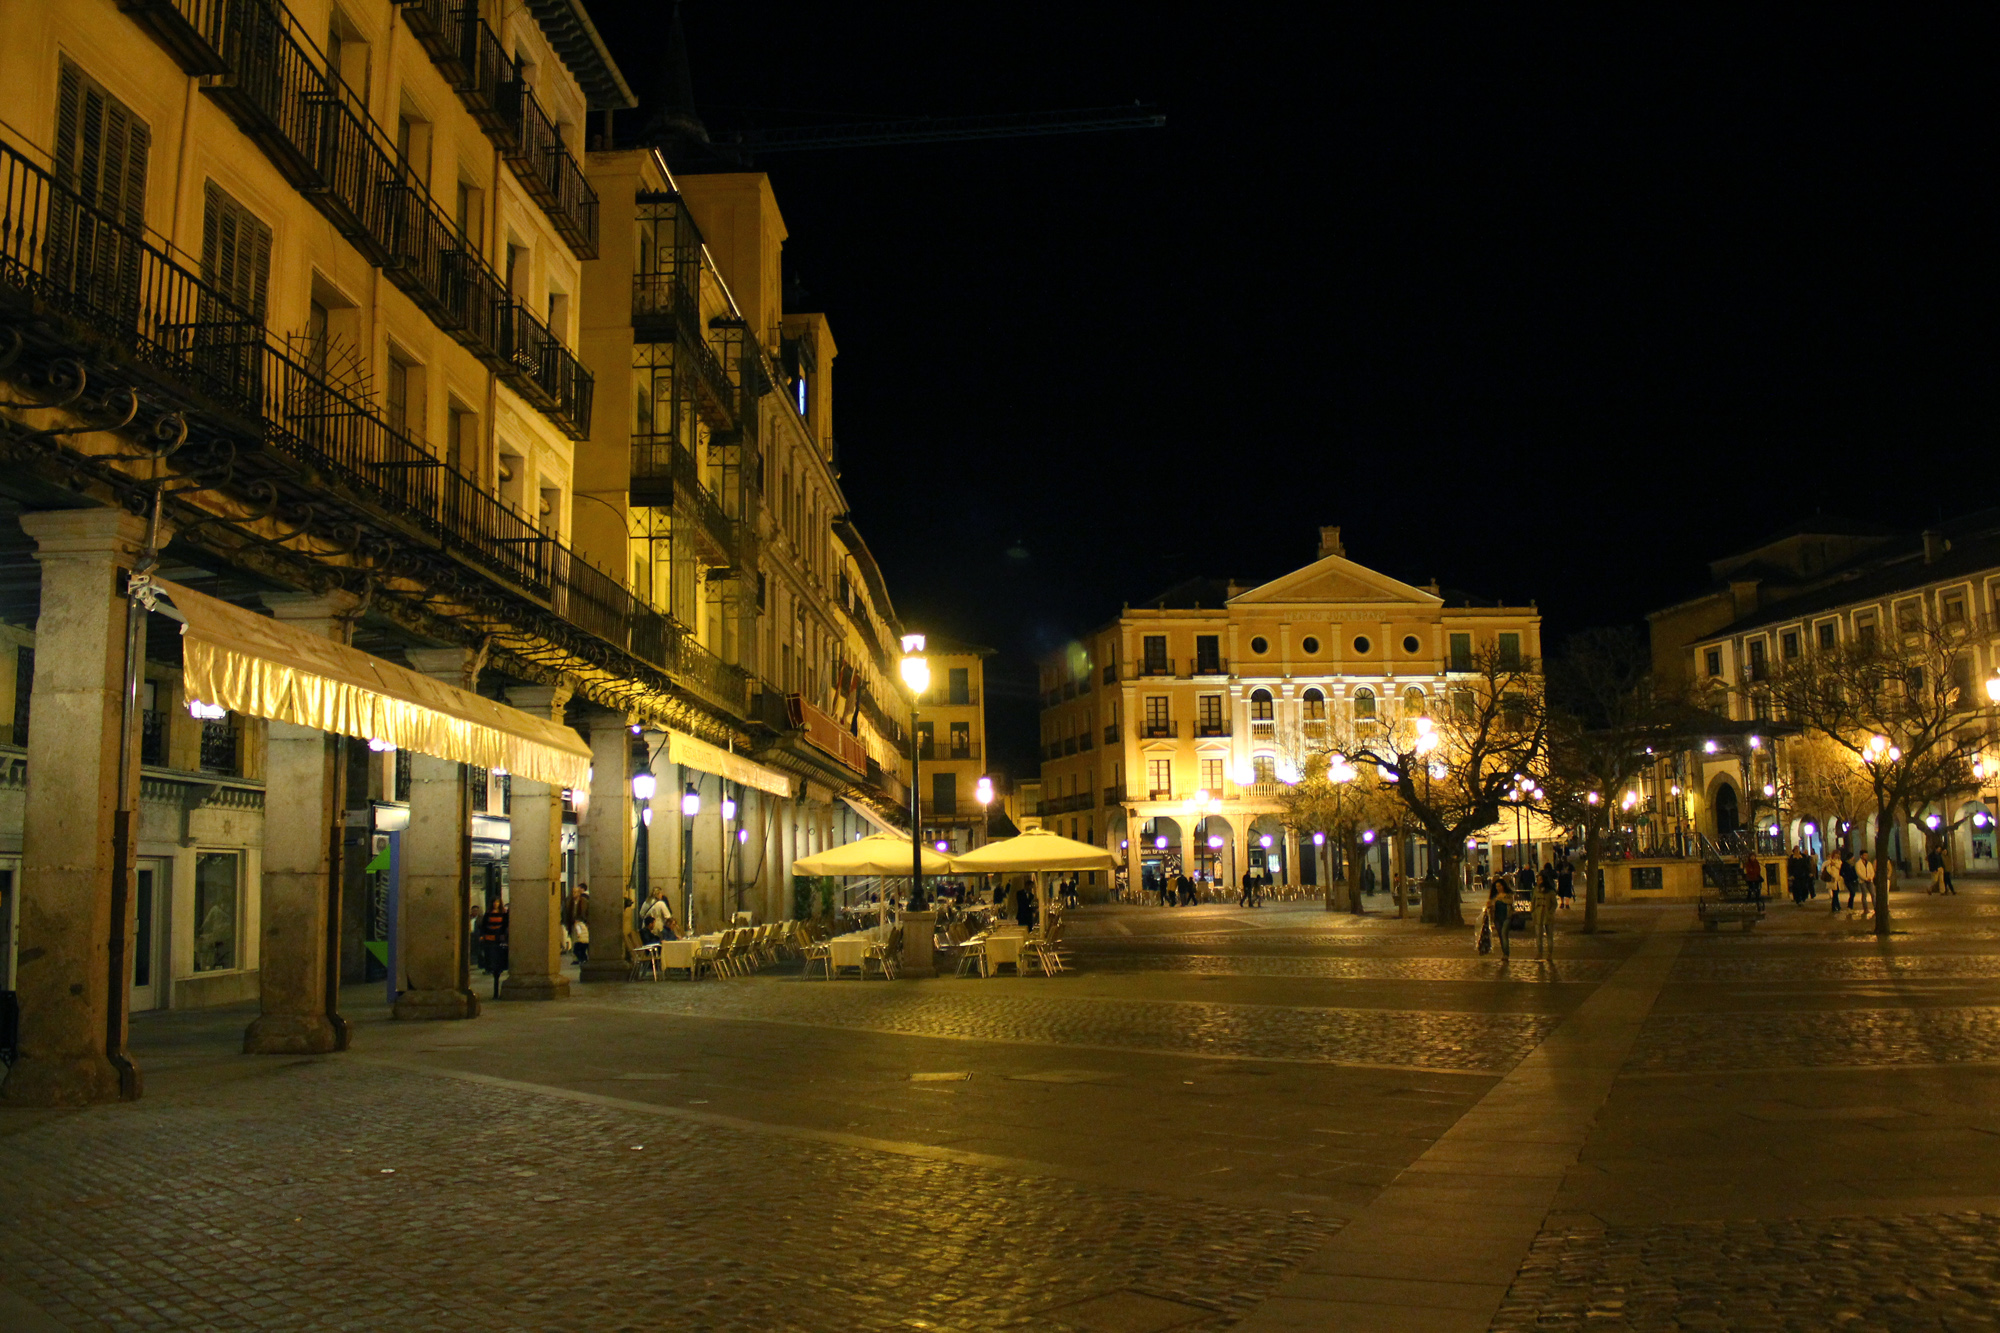 Segovia nightlife